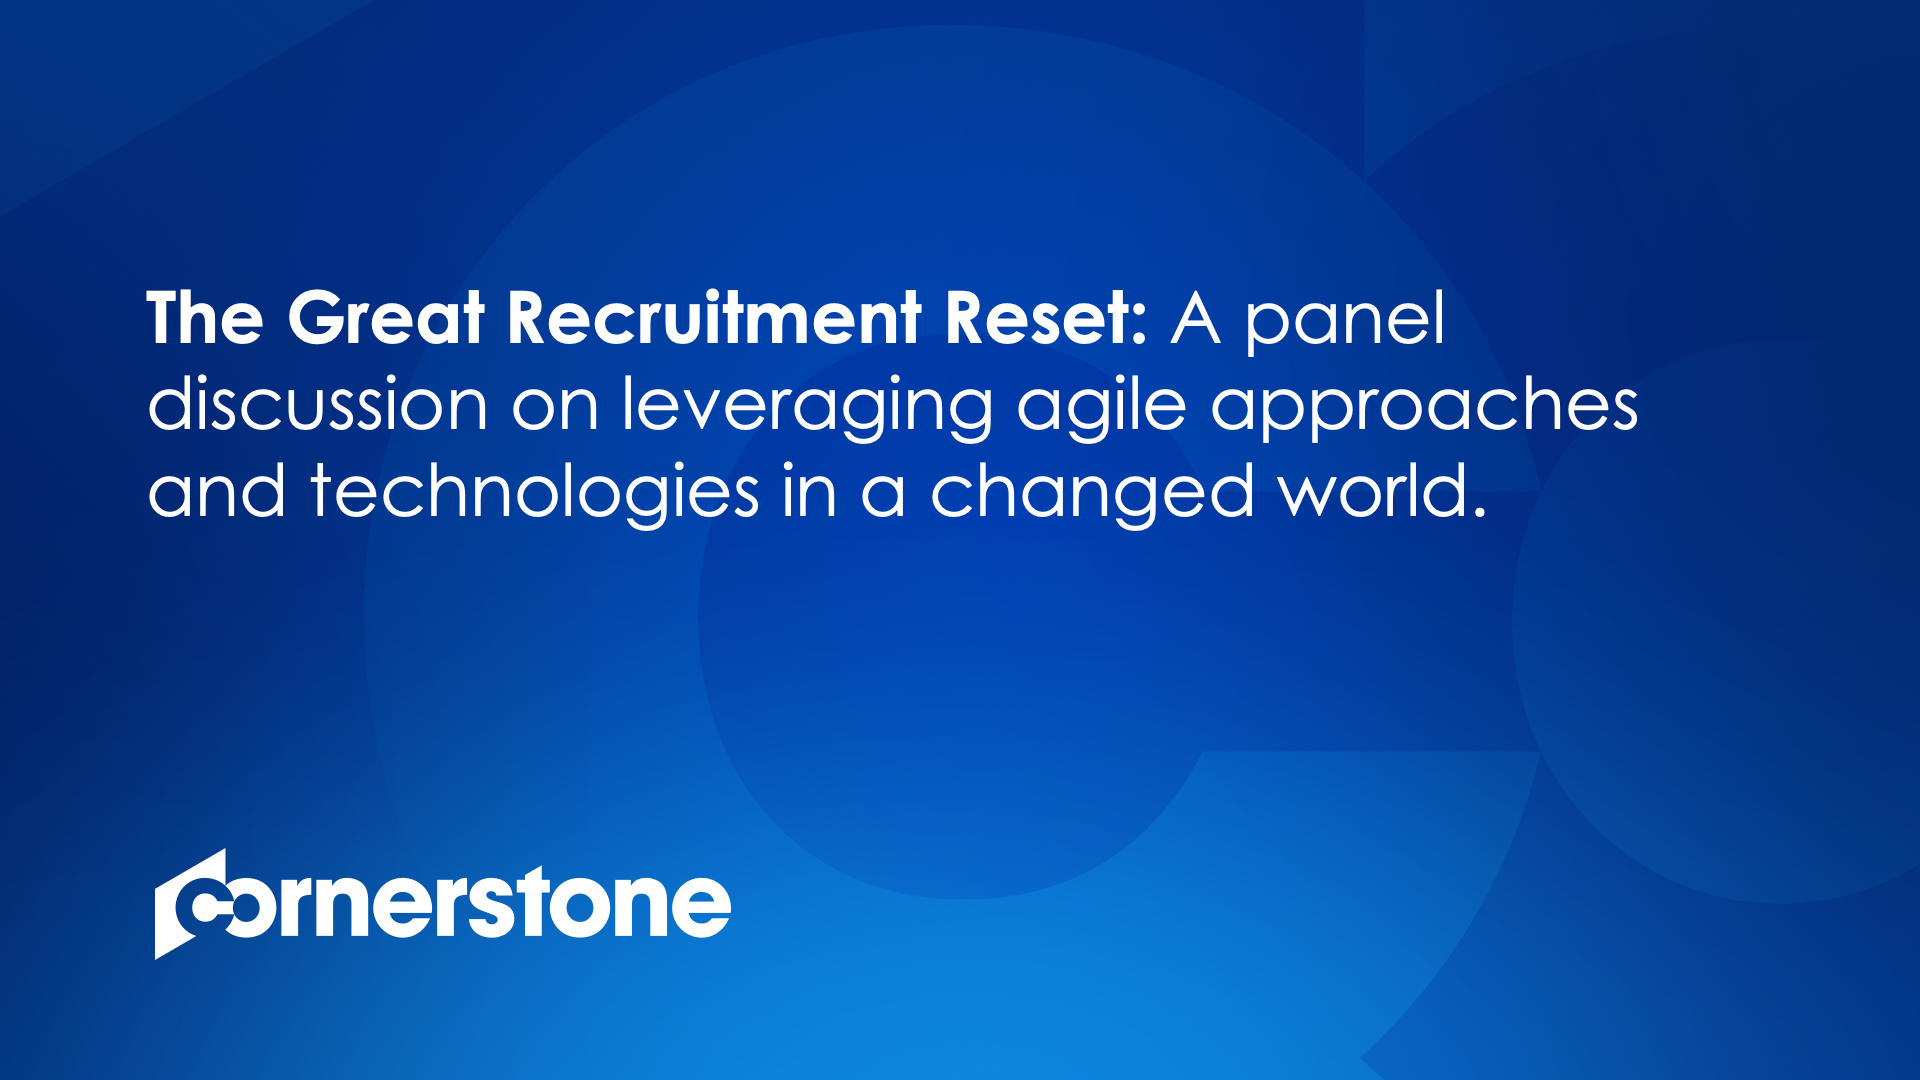 A discussion on leveraging agile approaches and technologies in a changed world